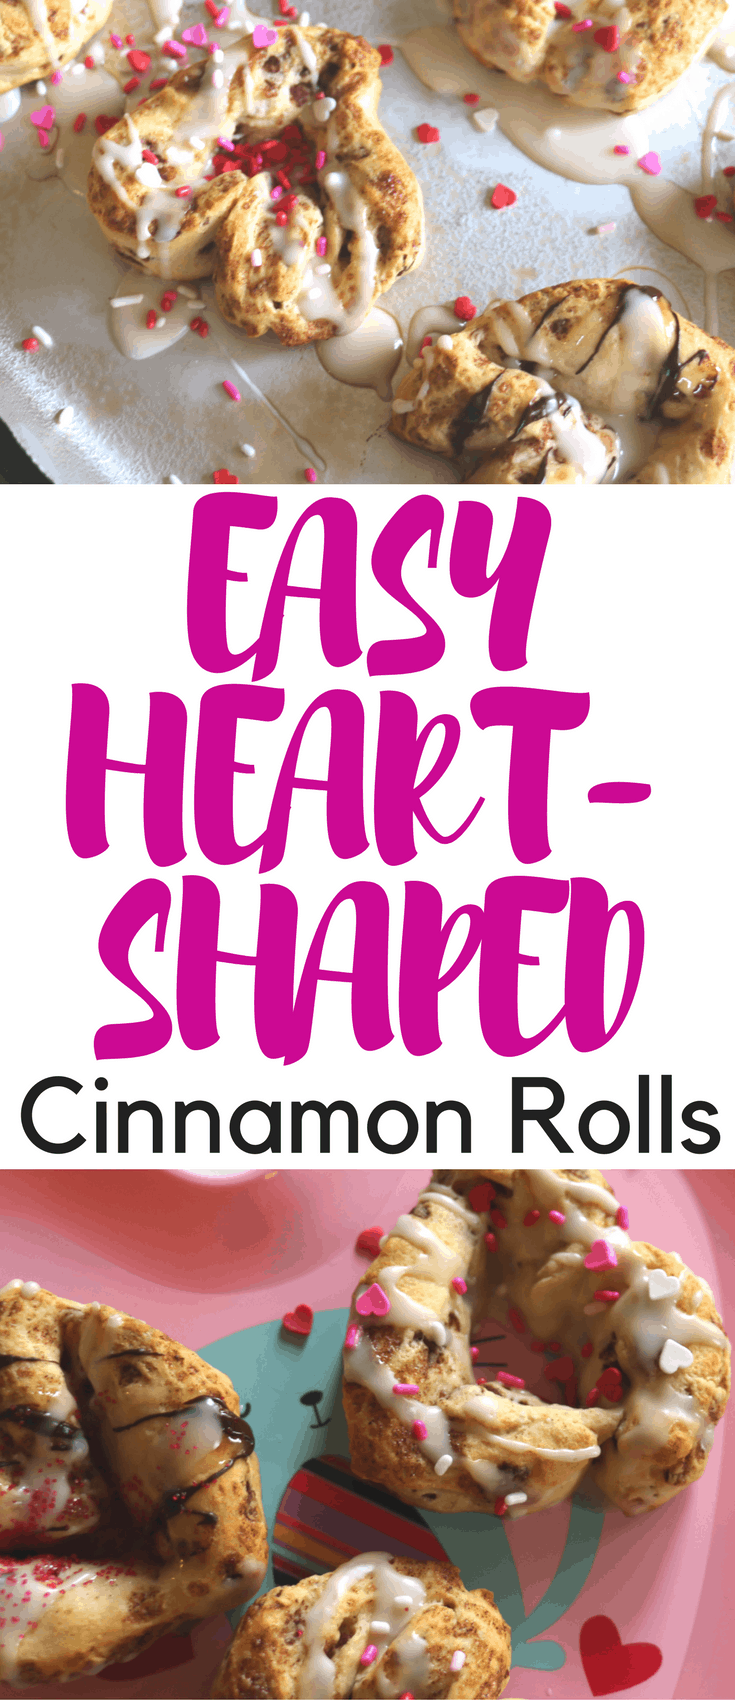 These heart-shaped cinnamon rolls are so easy. They come together in under 30 minutes with just two ingredients and make a great Valentine's Day treat.